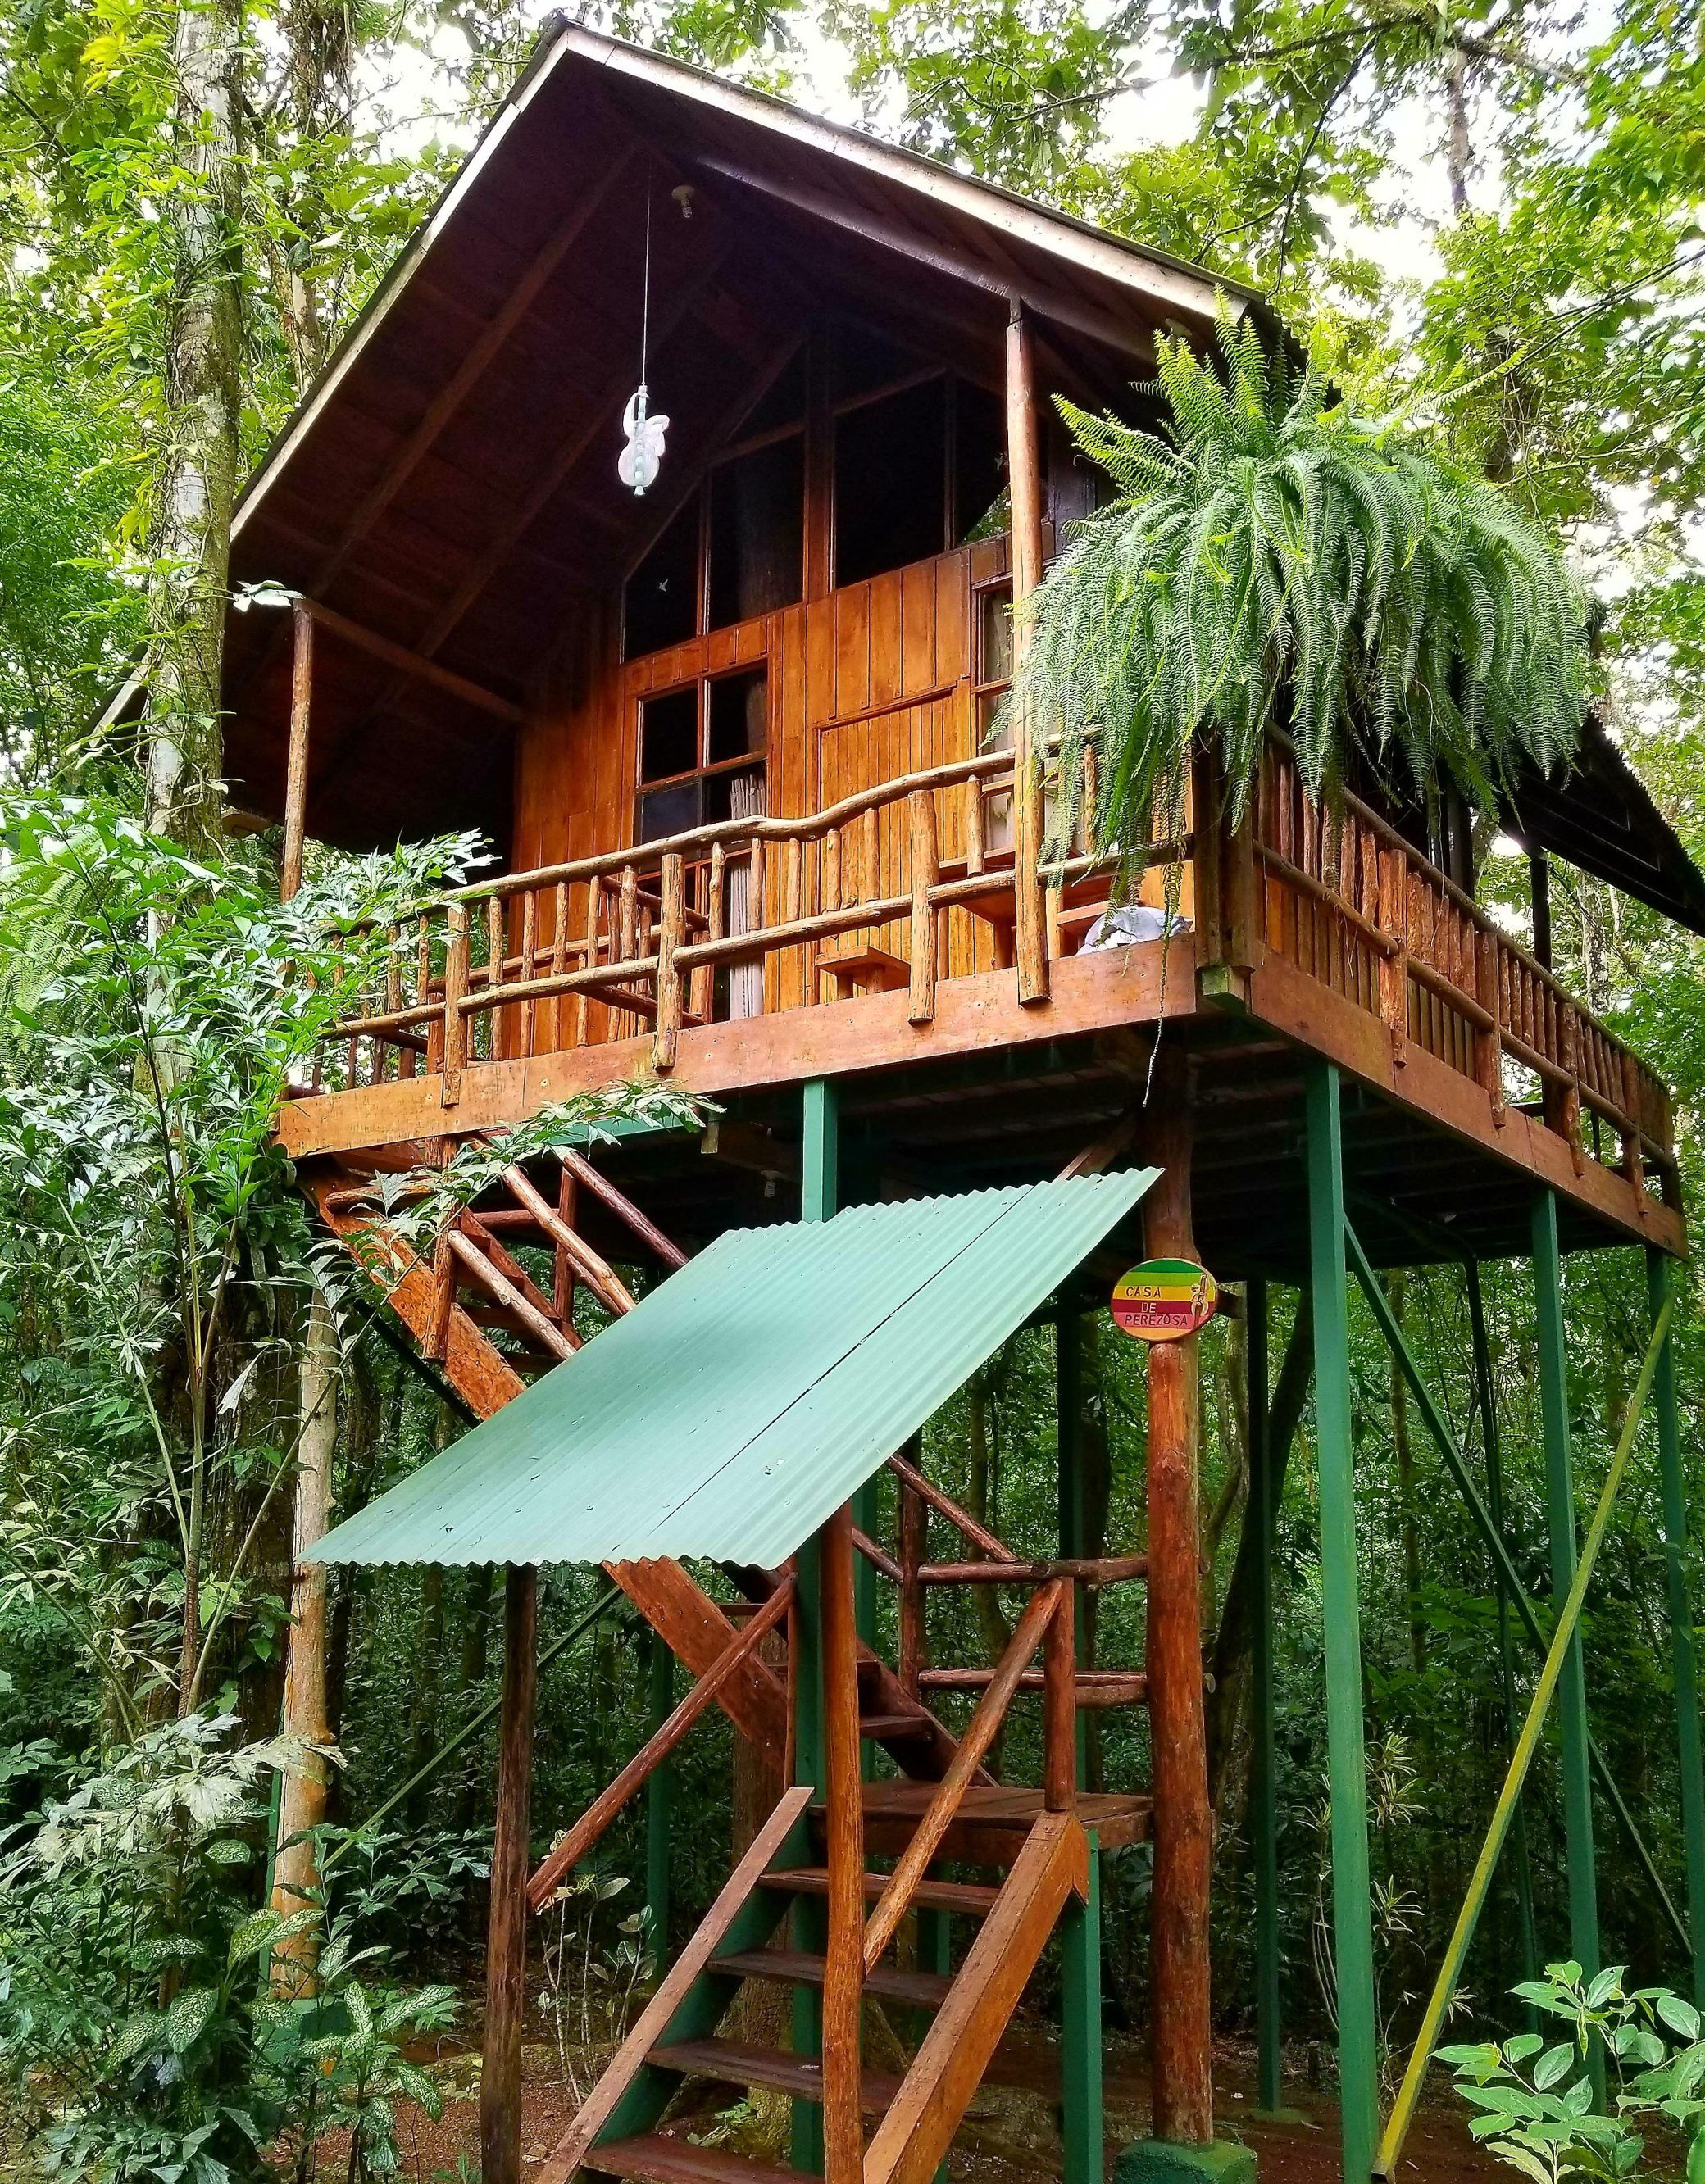 Tree Houses Hotel Sleeping In The Canopy Of Costa Rica